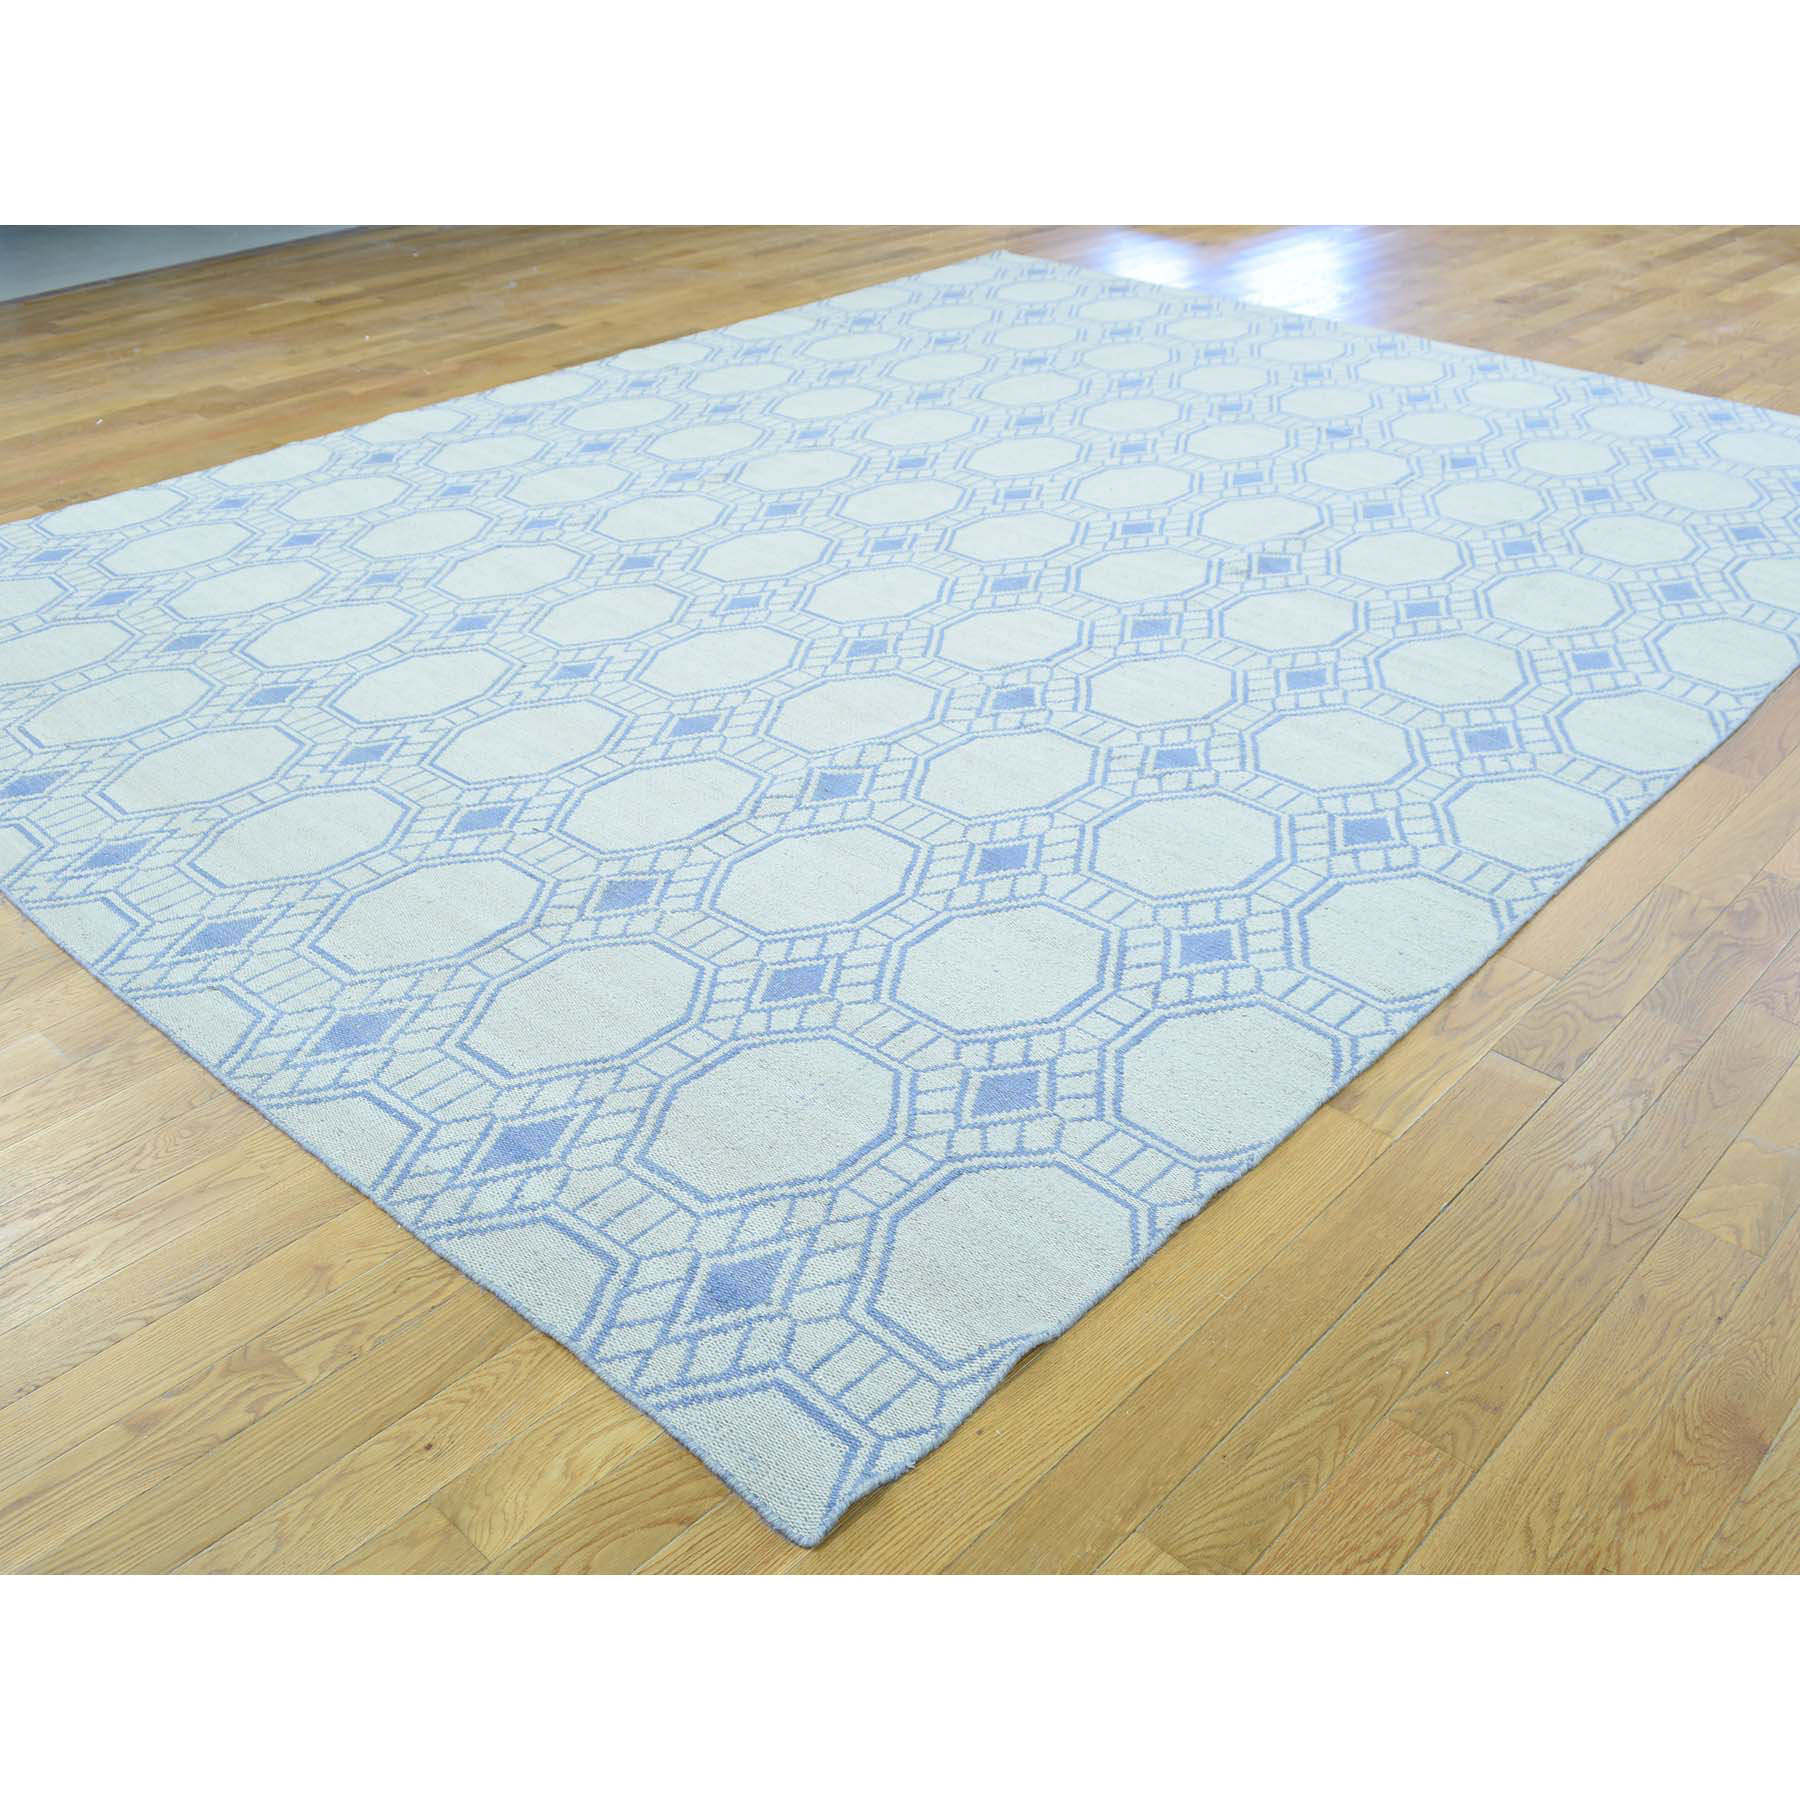 9-x11-7  Flat Weave Hand Woven Durie Kilim Reversible Oriental Rug